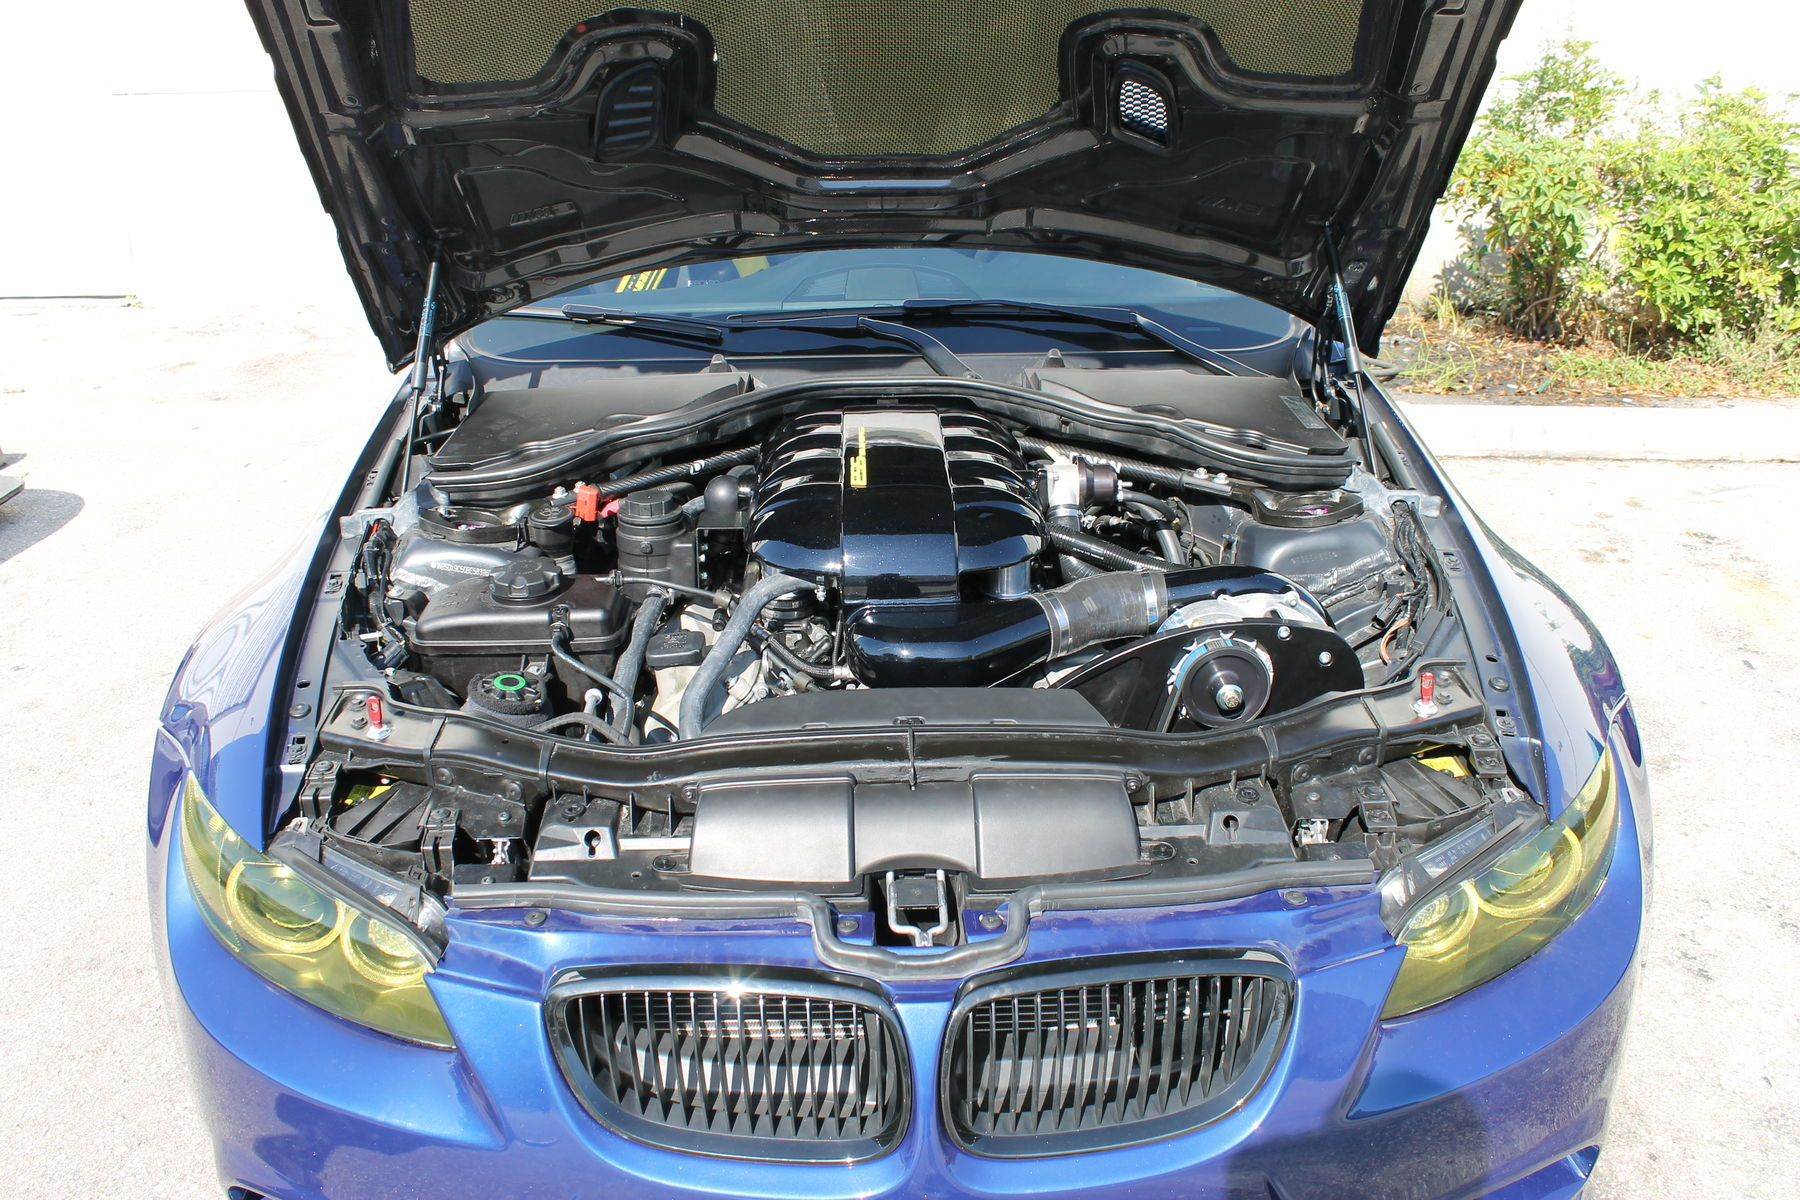 BMW M3 | Supercharged Dinan BMW e93 M3